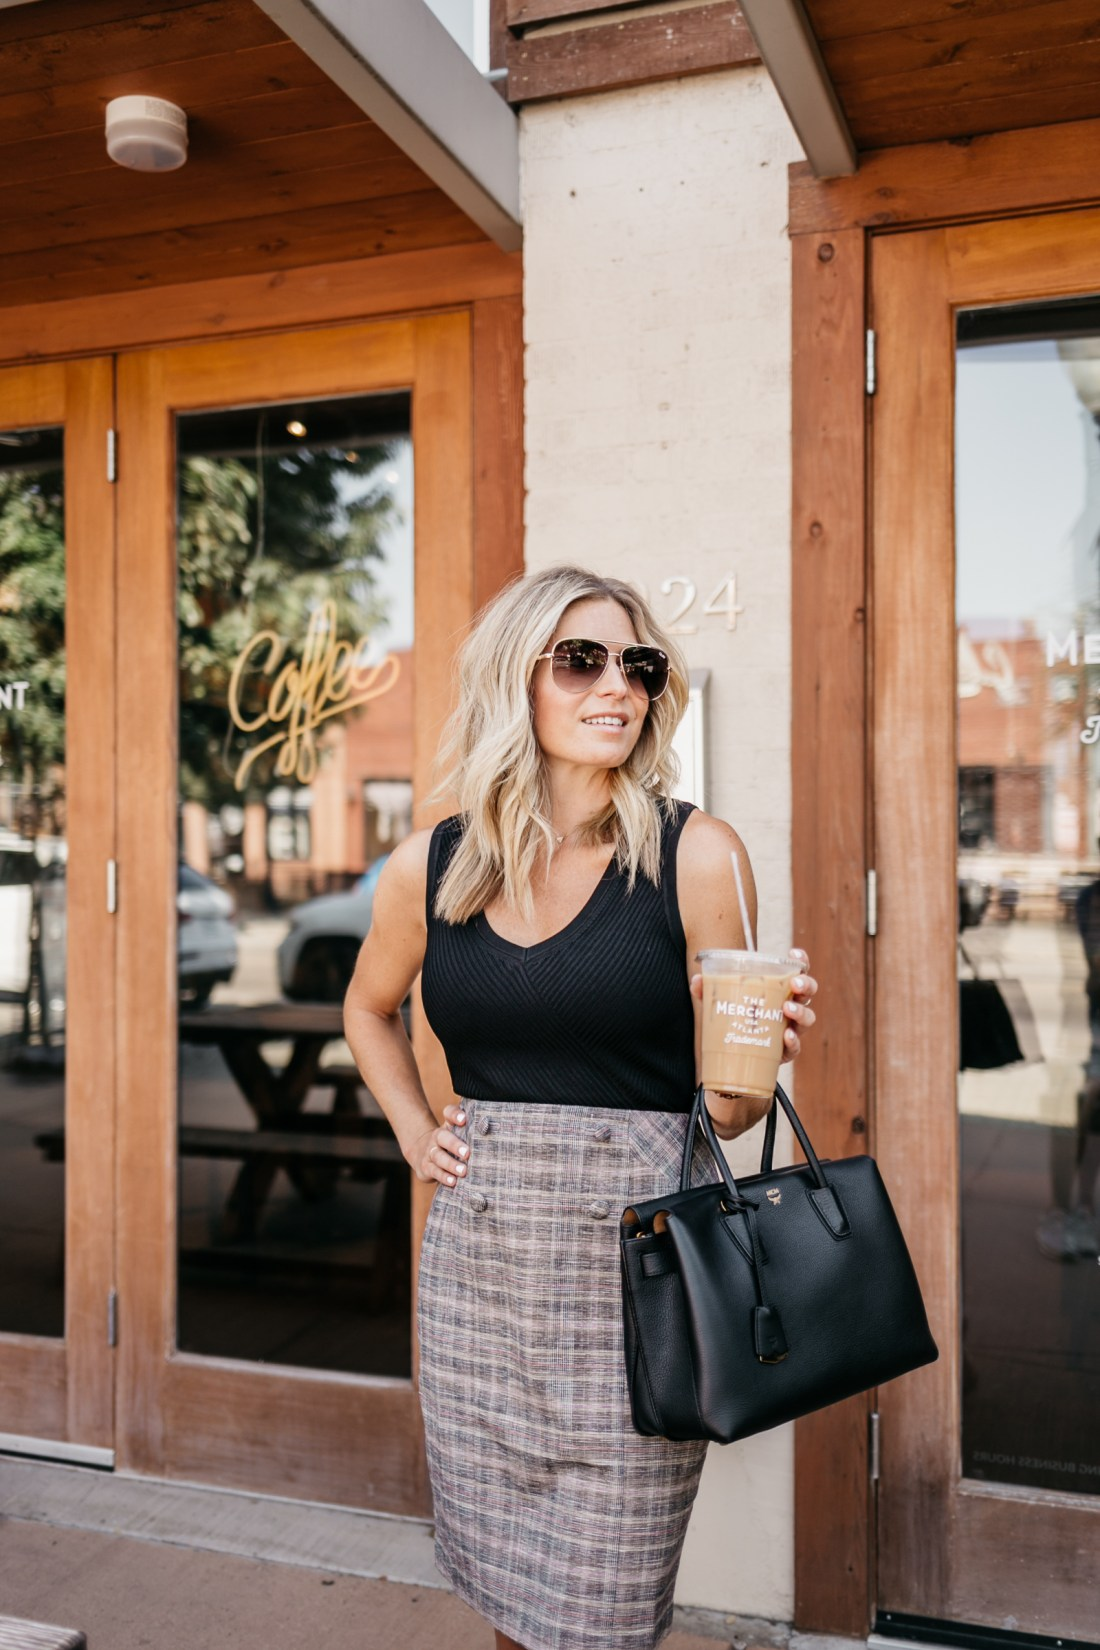 Wondering how to stay organized? Brooke thinks about this question in front of a coffee shop